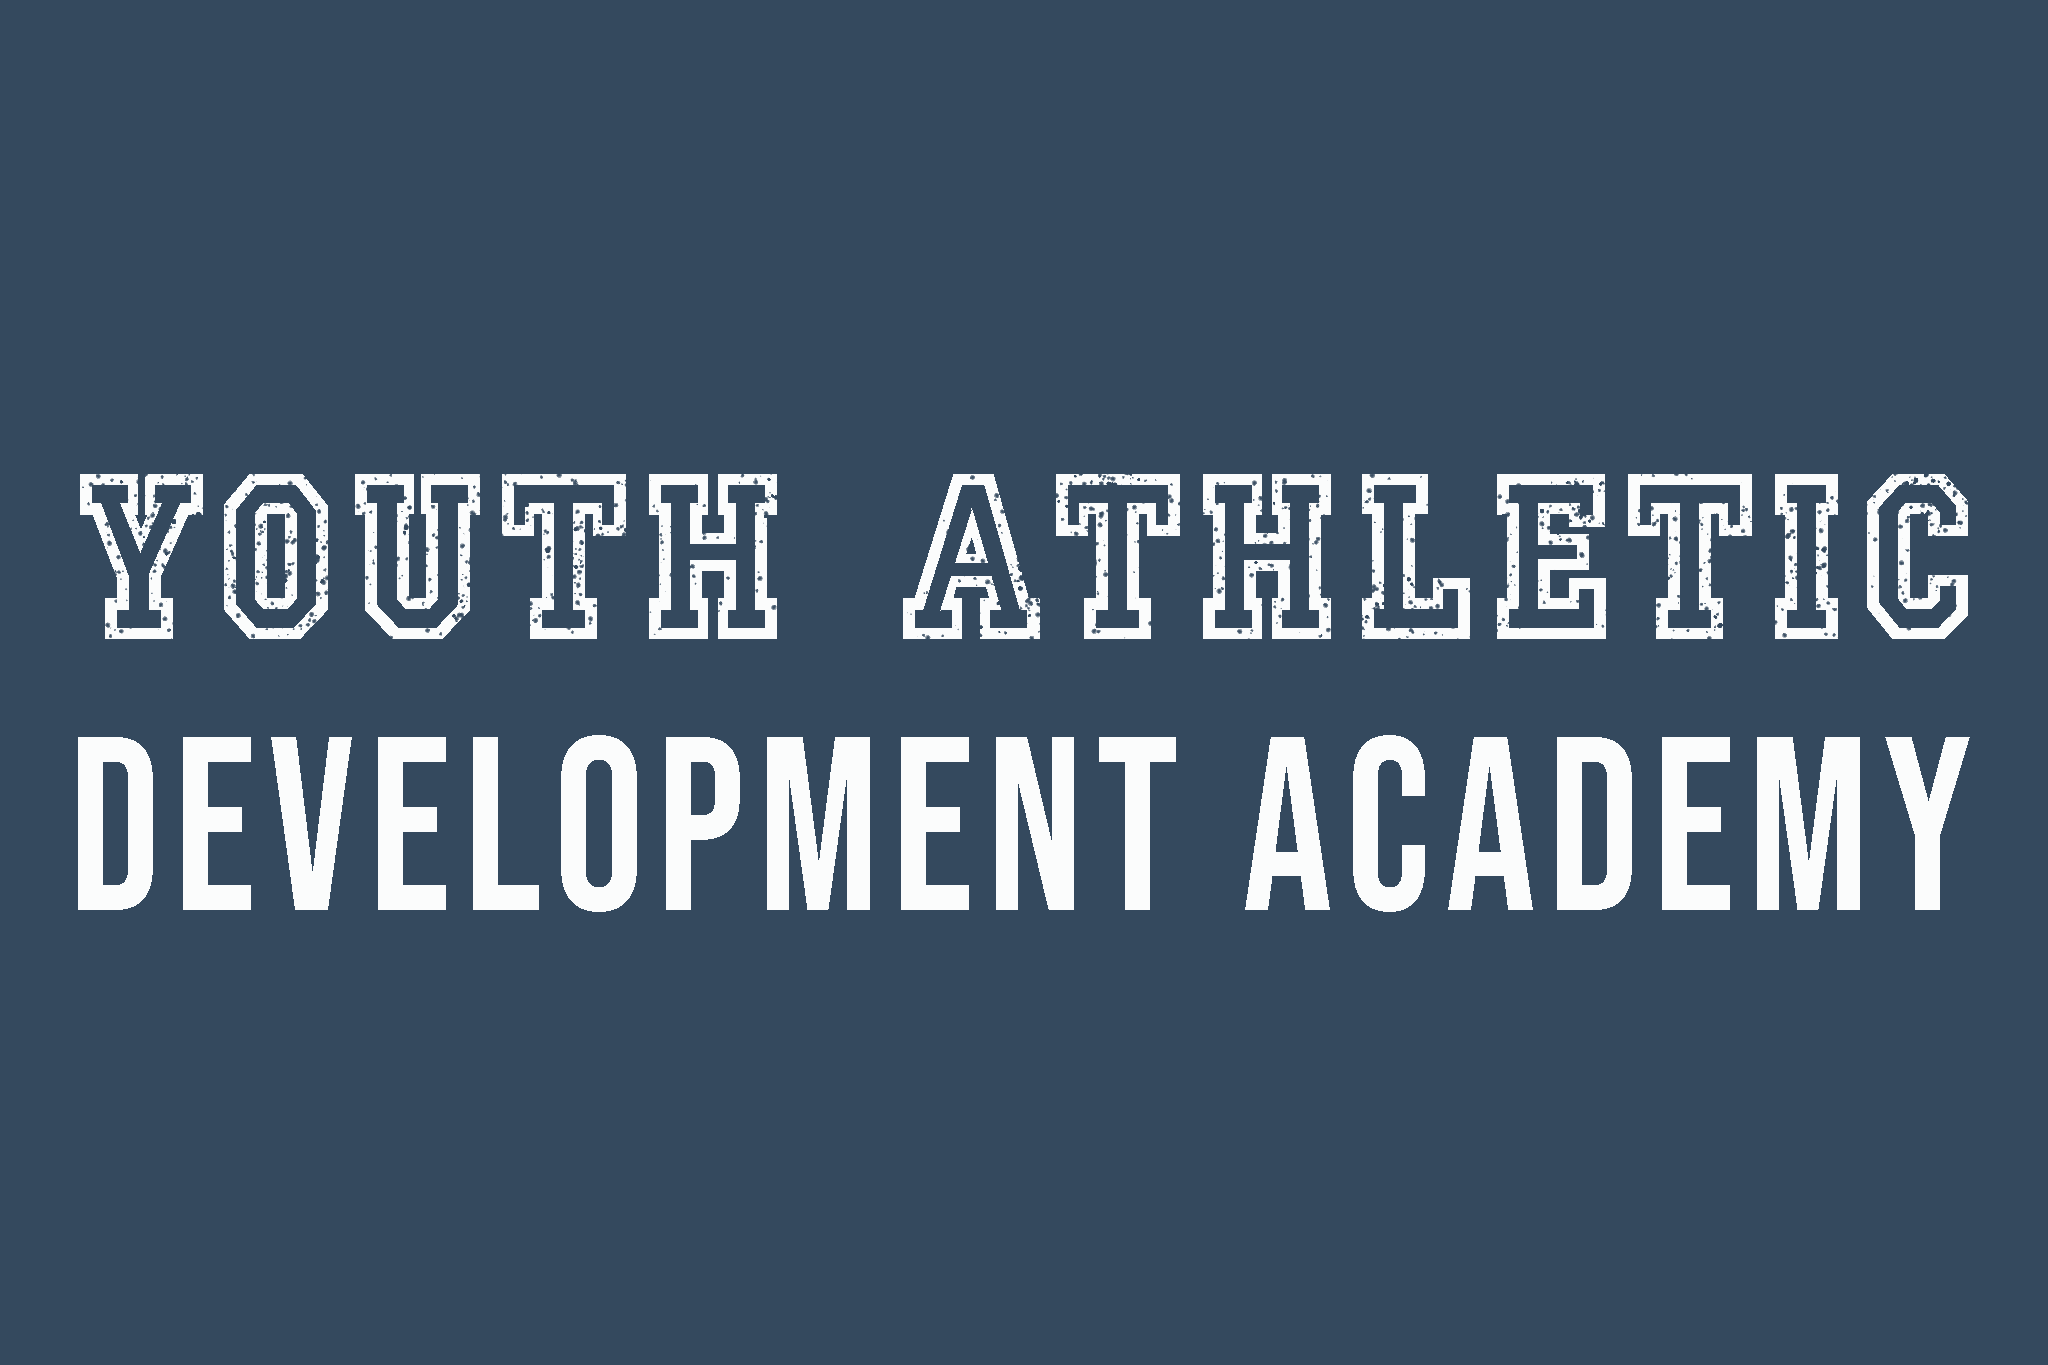 WHAT IS THE YOUTH ATHLETIC DEVELOPMENT ACADEMY?